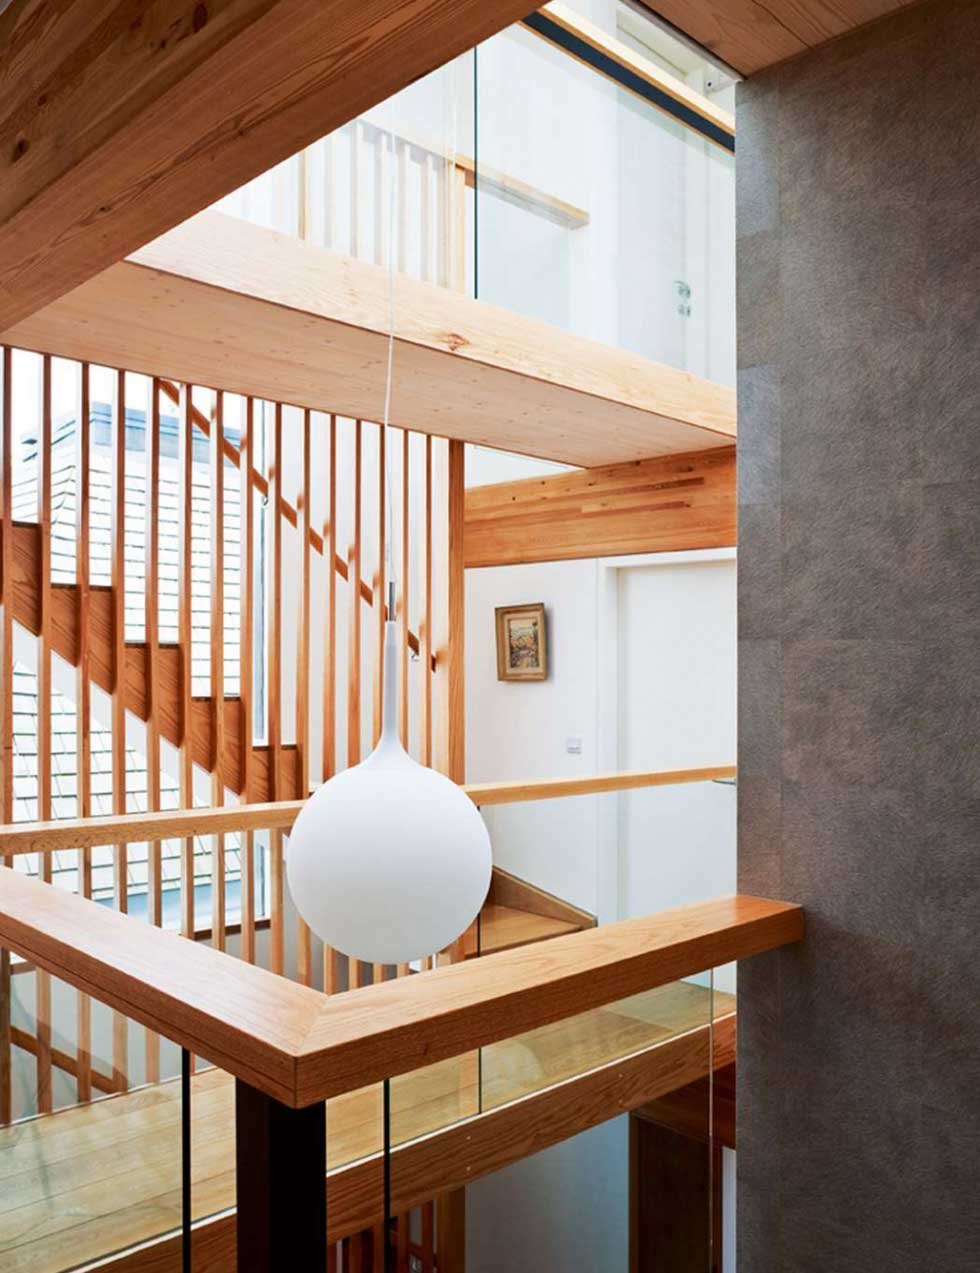 The striking oak staircase was crafted by Cambridge Joinery, with a tall louvred baluster running through all three storeys — creating an internal brise soleil